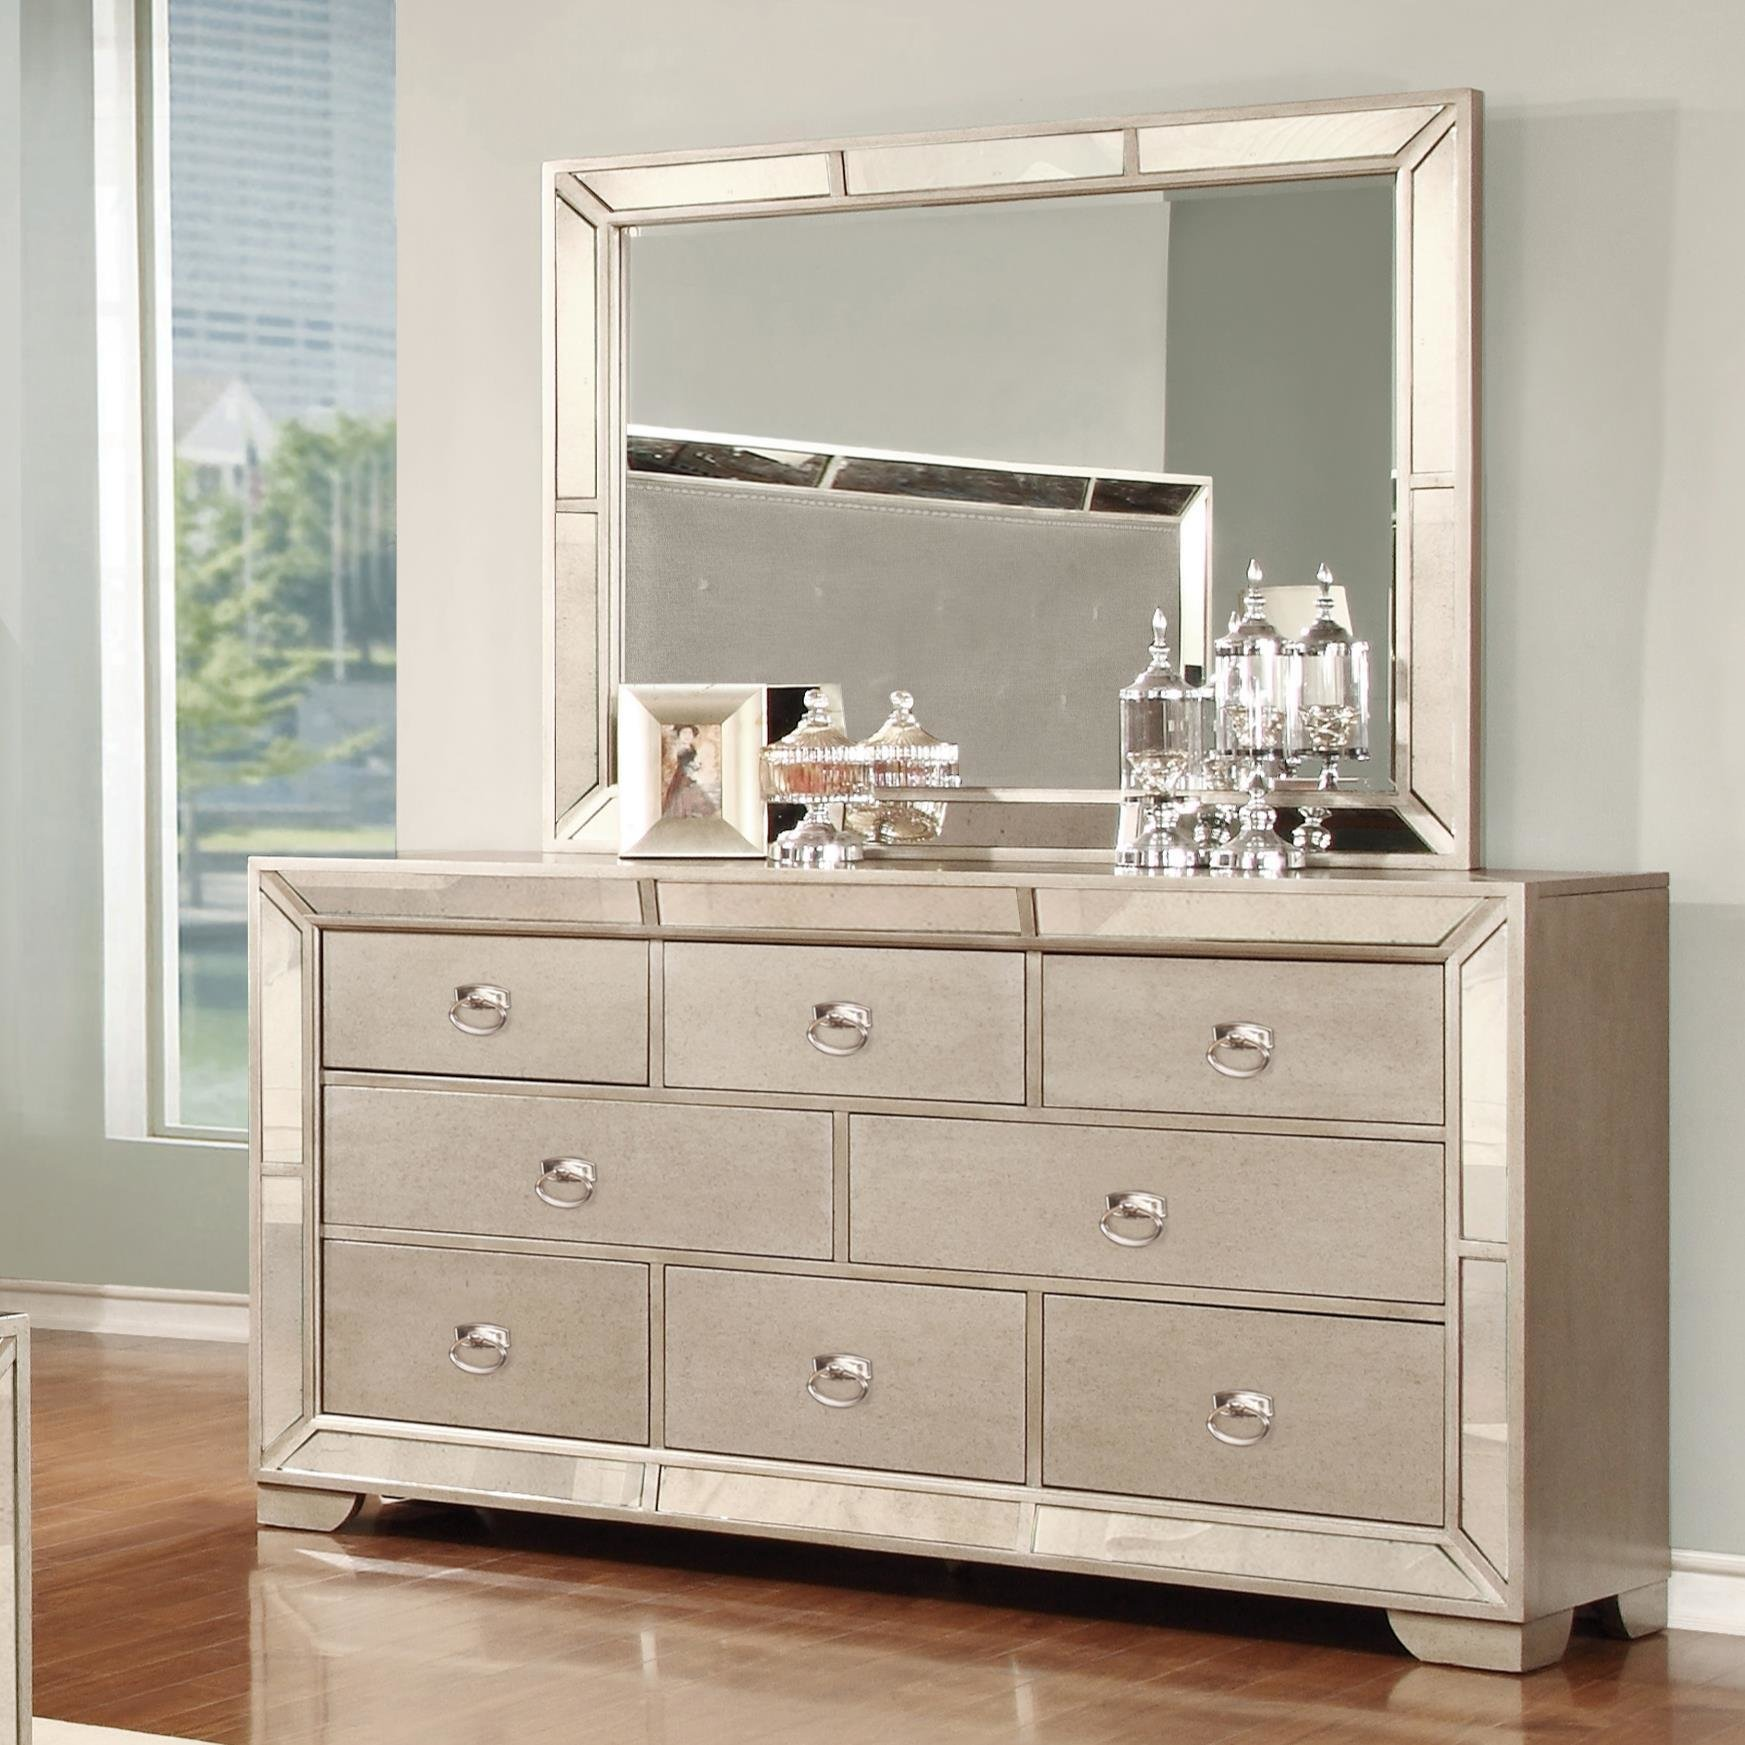 Best Lifestyle Glitzy 7 Drawer Dresser And Mirror Set Royal With Pictures